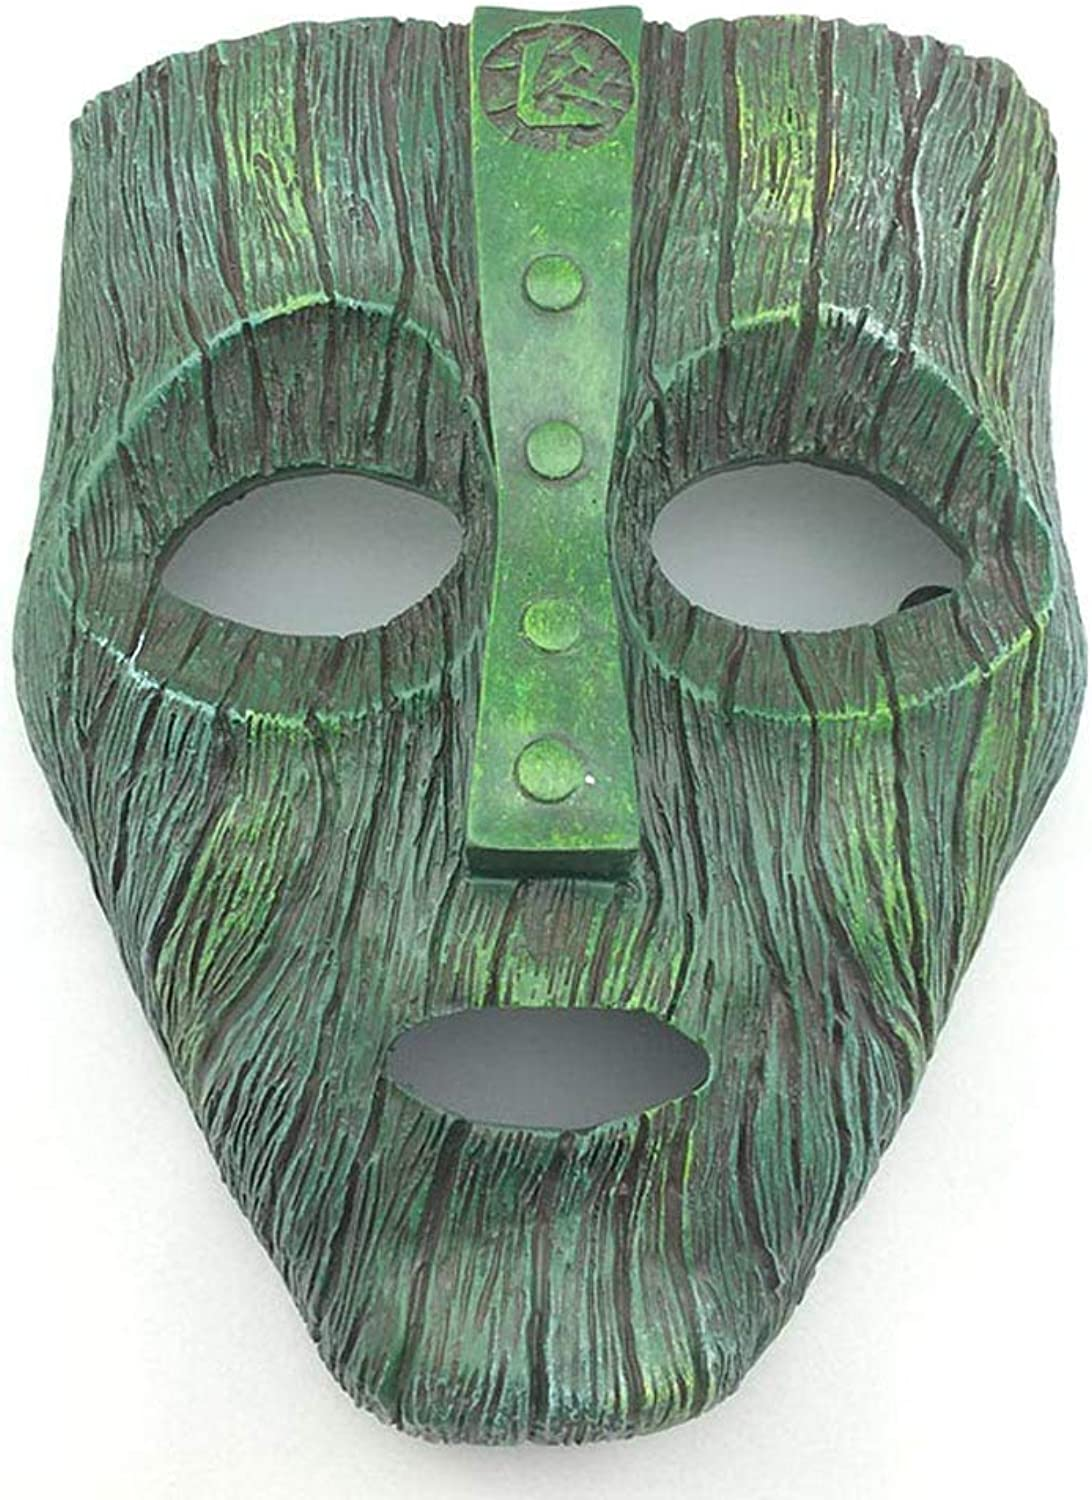 Zicue Humgoldus Mask Masquerade Prom Mask Halloween Horror Costume,green Cosplay Props Gifts Unisex  Adult, Single Size